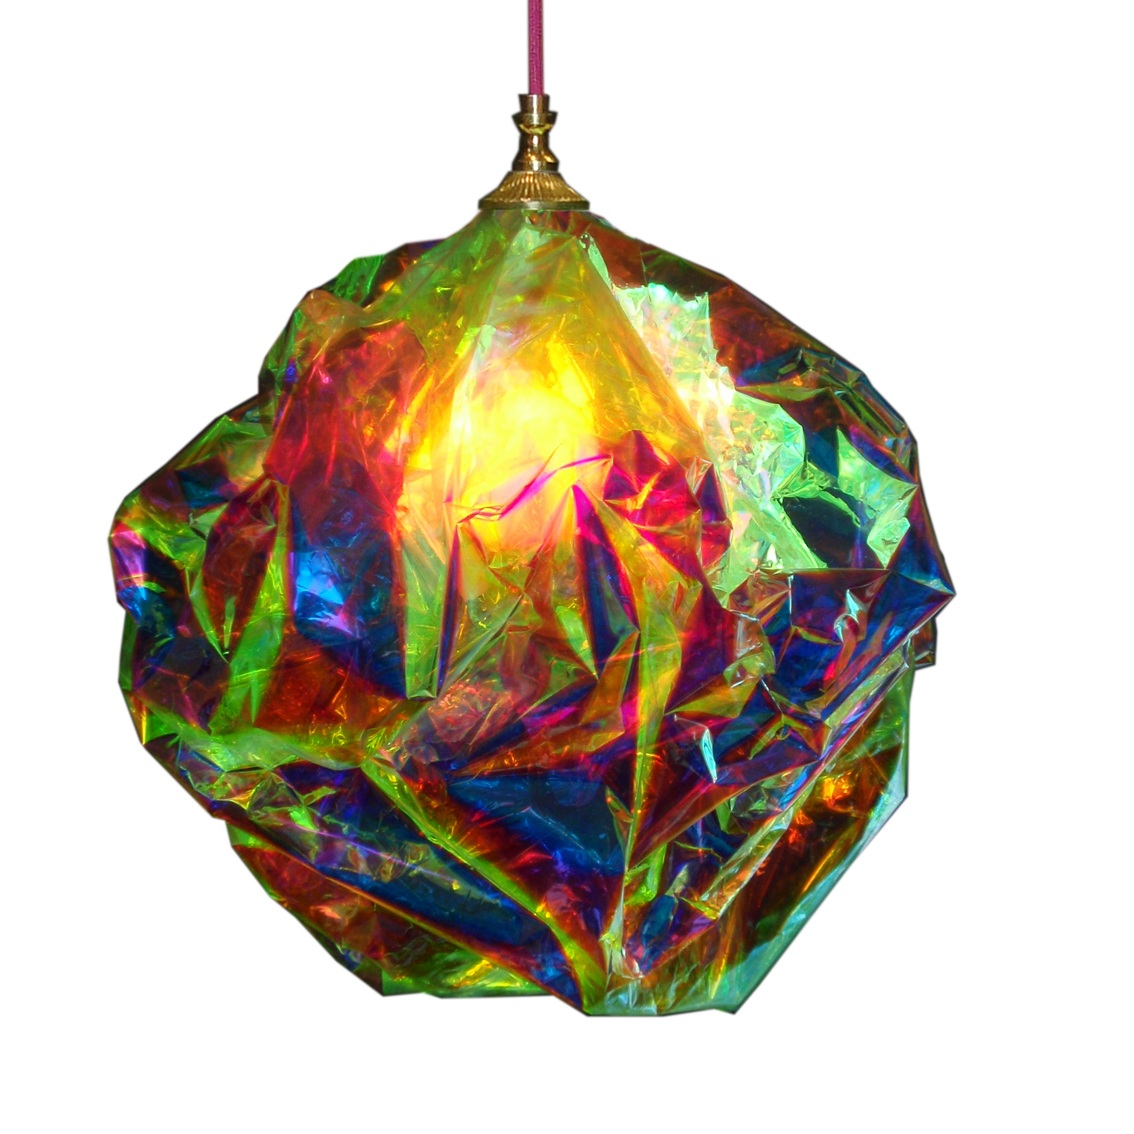 Up-cycled light by Maria